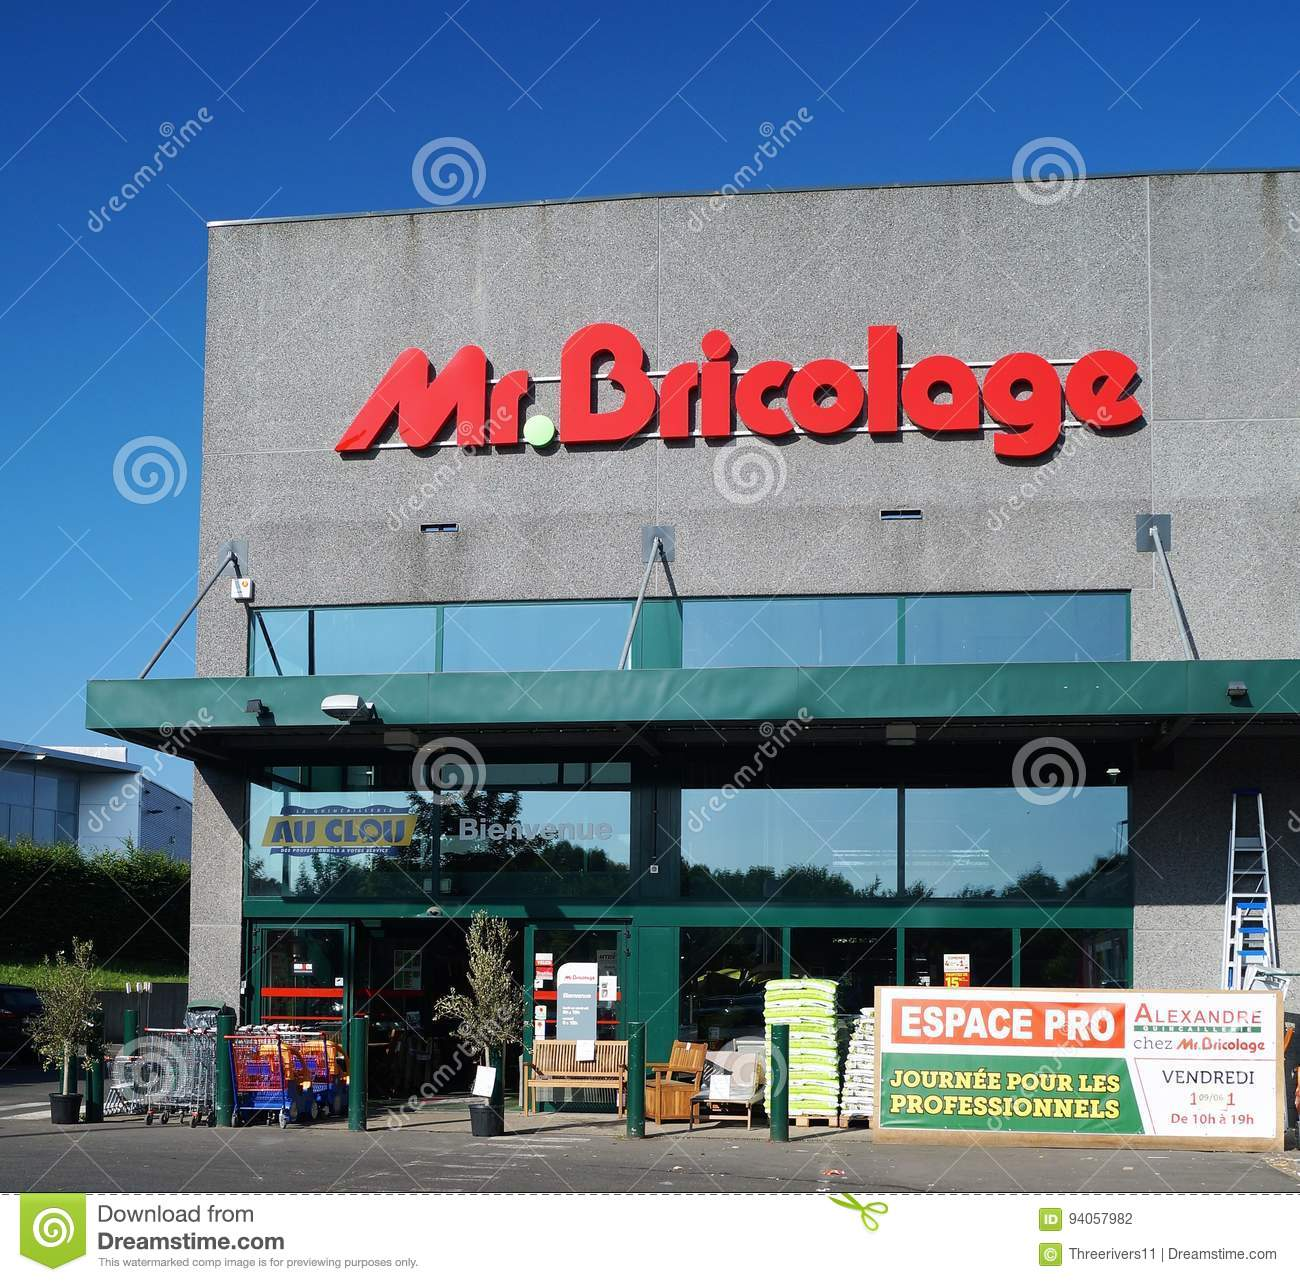 Magasin Bricolage Pau Magasin Bricolage Cheap Gallery Of Magasin Bricolage Ouvert